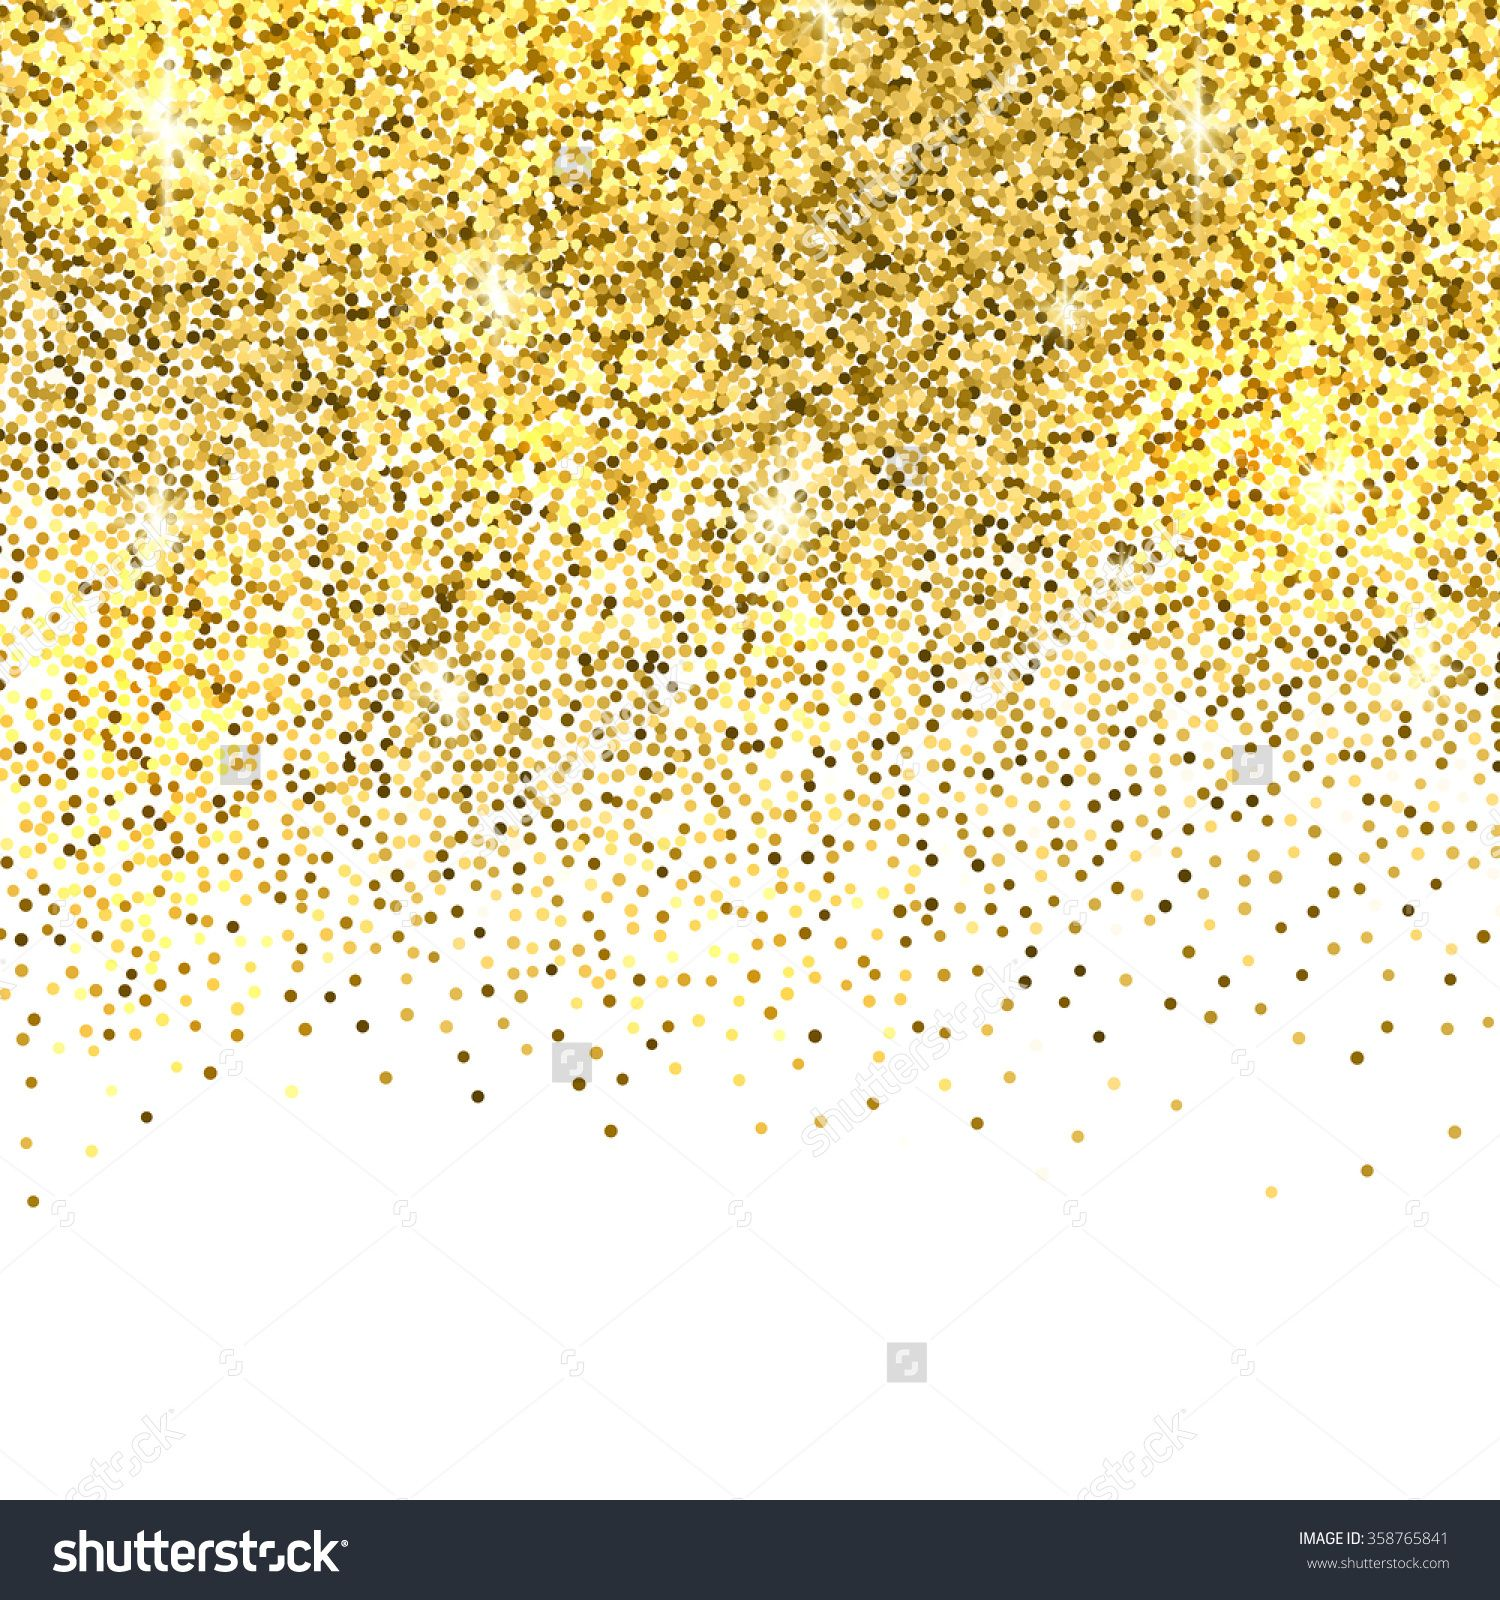 Glitter Gold: Gold Sparkles On White Background. Gold Glitter Background